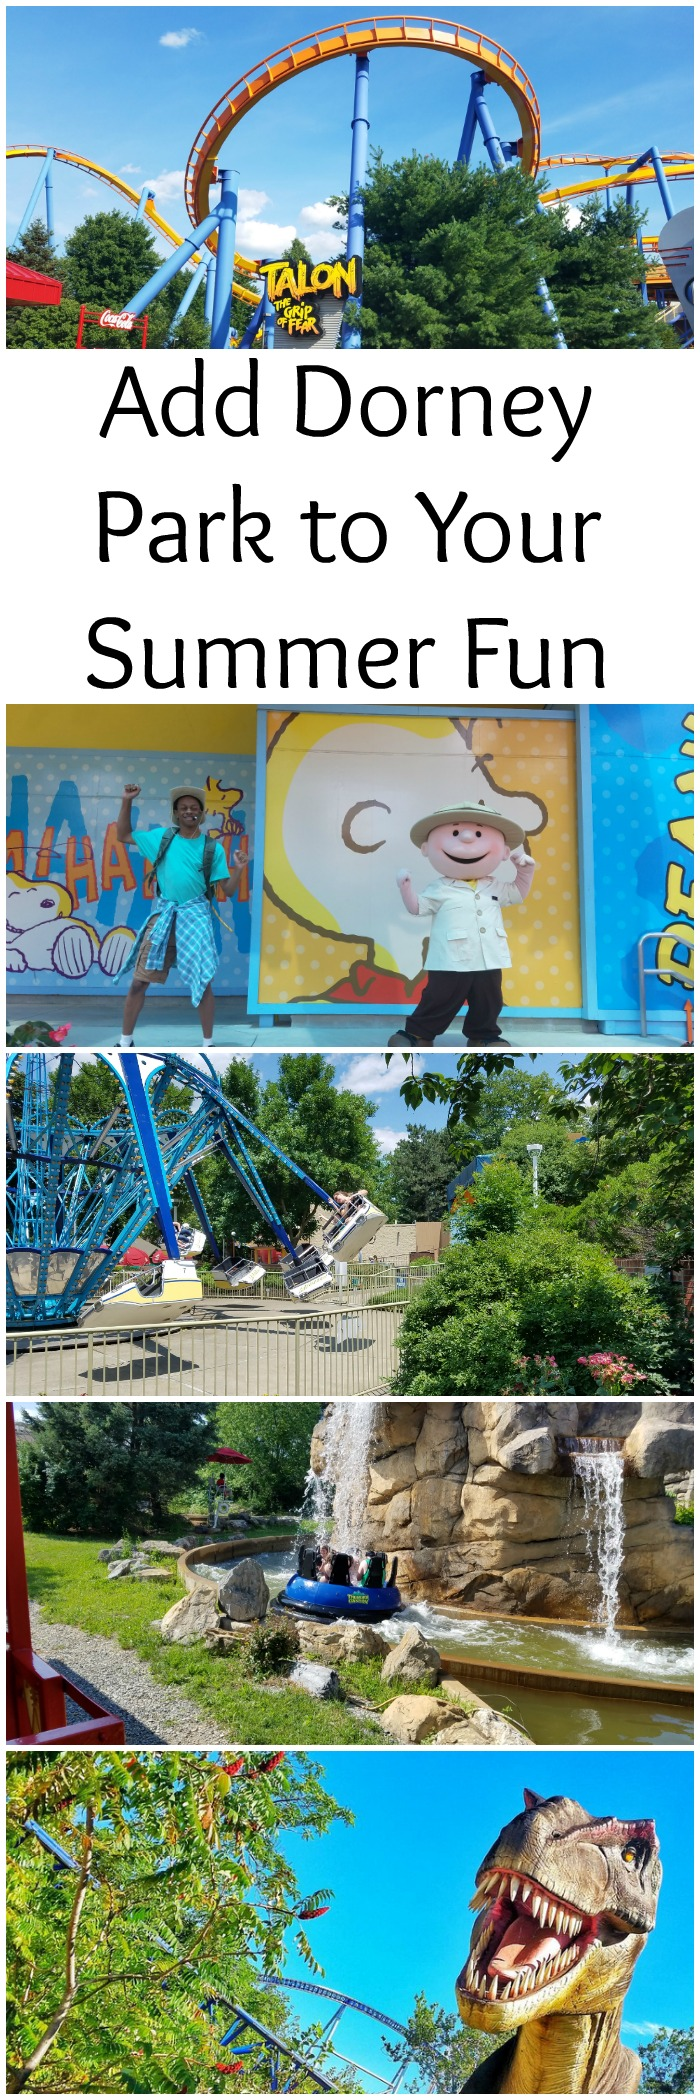 Add Dorney Park to your summer fun